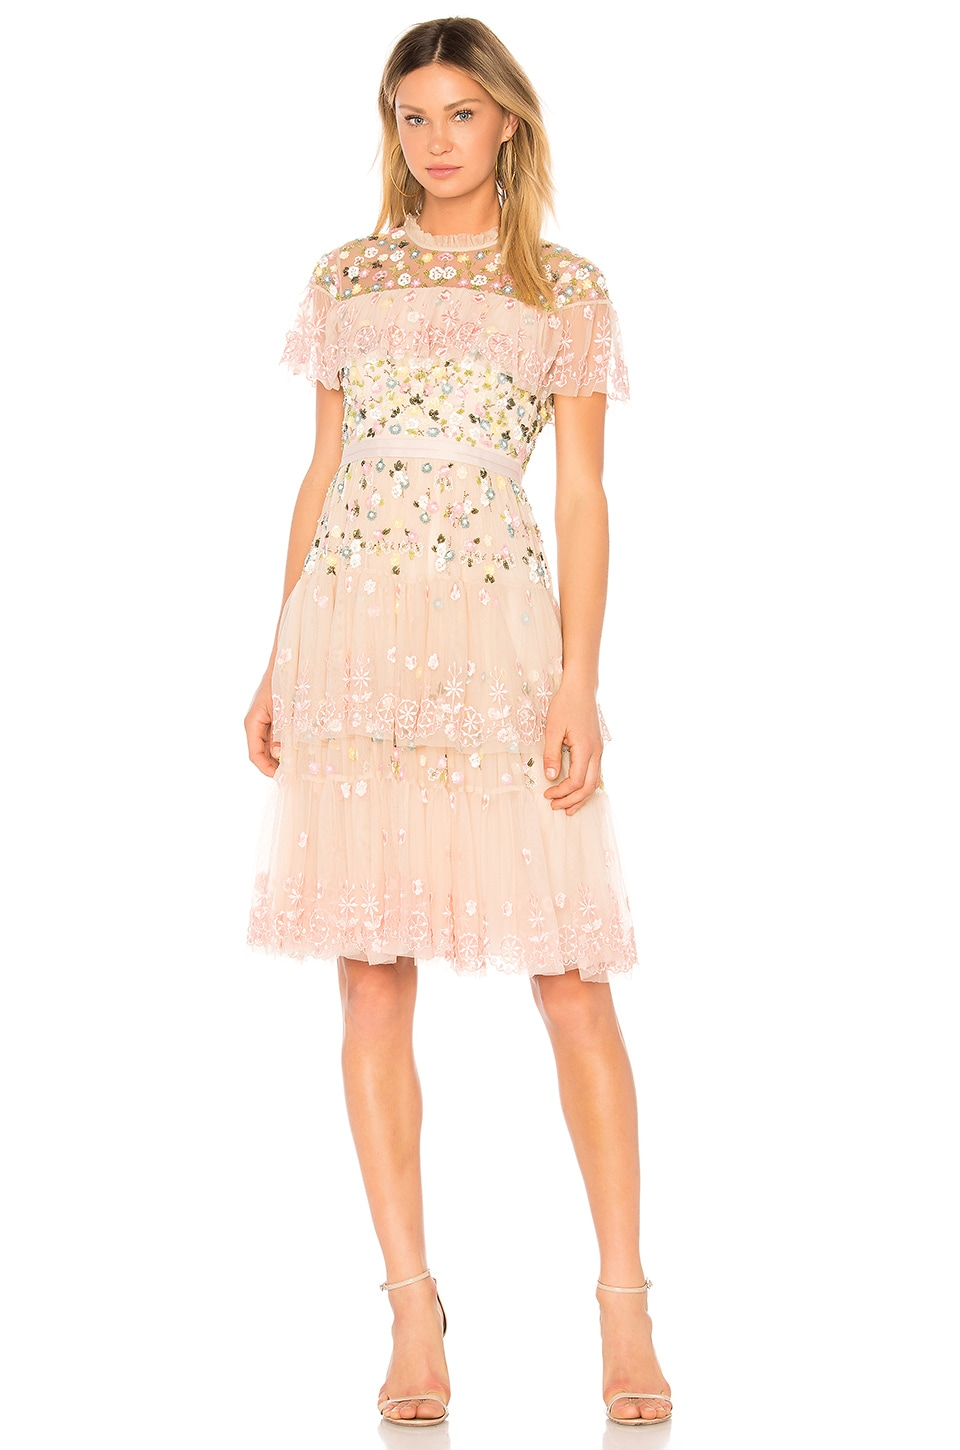 Needle & Thread Tiered Anglais Mini Dress in Petal Pink